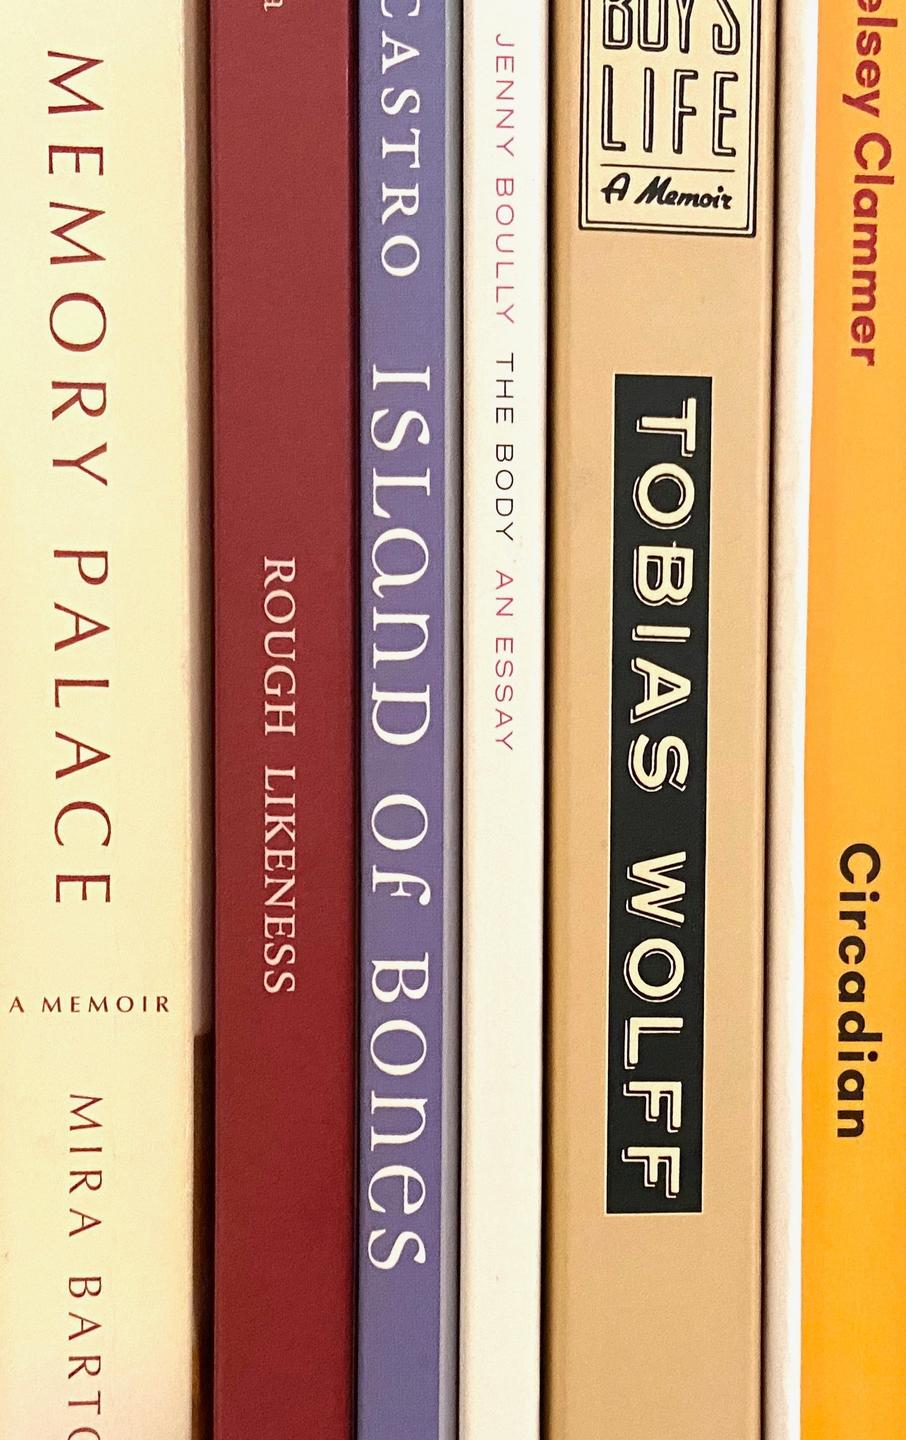 Creative nonfiction book spines: Memory Palace, Rough Likeness, Island of Bones, The Body An Essay, This Boy's Life, Circadian